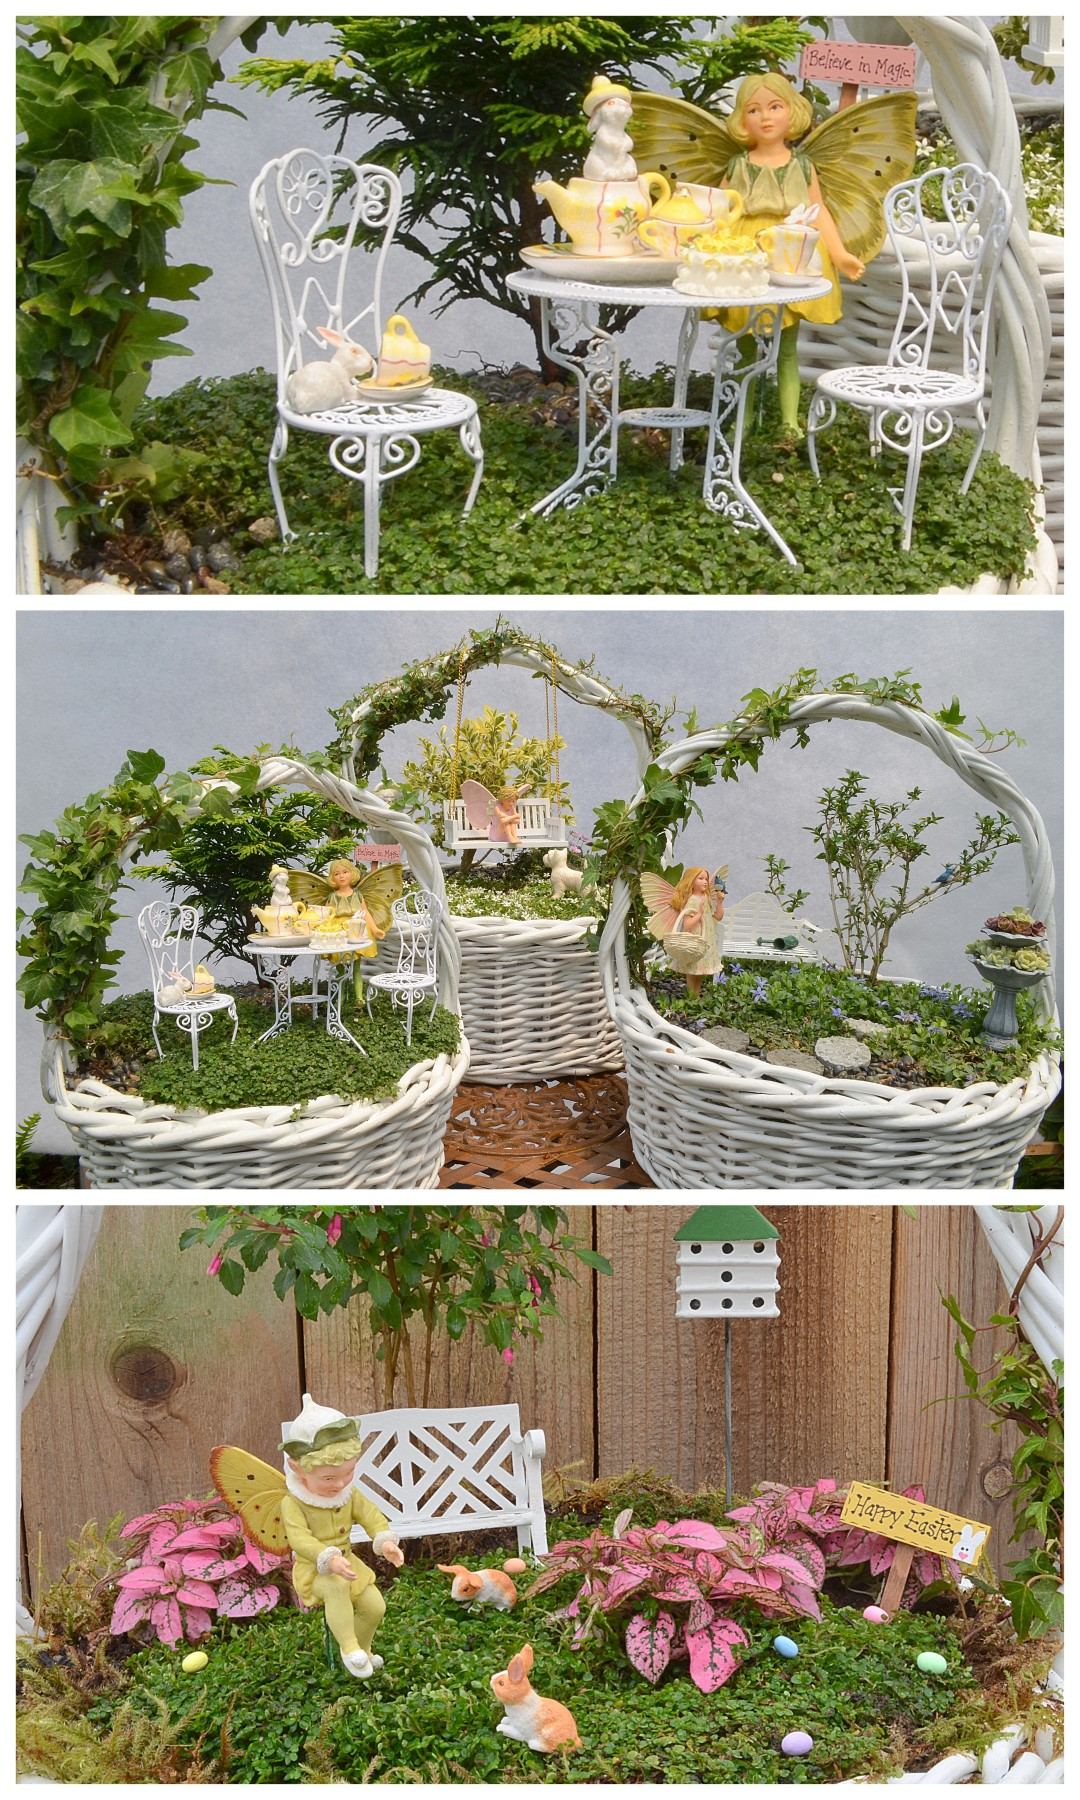 Excellent How To Make A Fairy Garden Easter Basket Fairy Garden Garden Rapy Miniature Fairy Gardens Kits Miniature Fairy Gardens garden Miniature Fairy Gardens